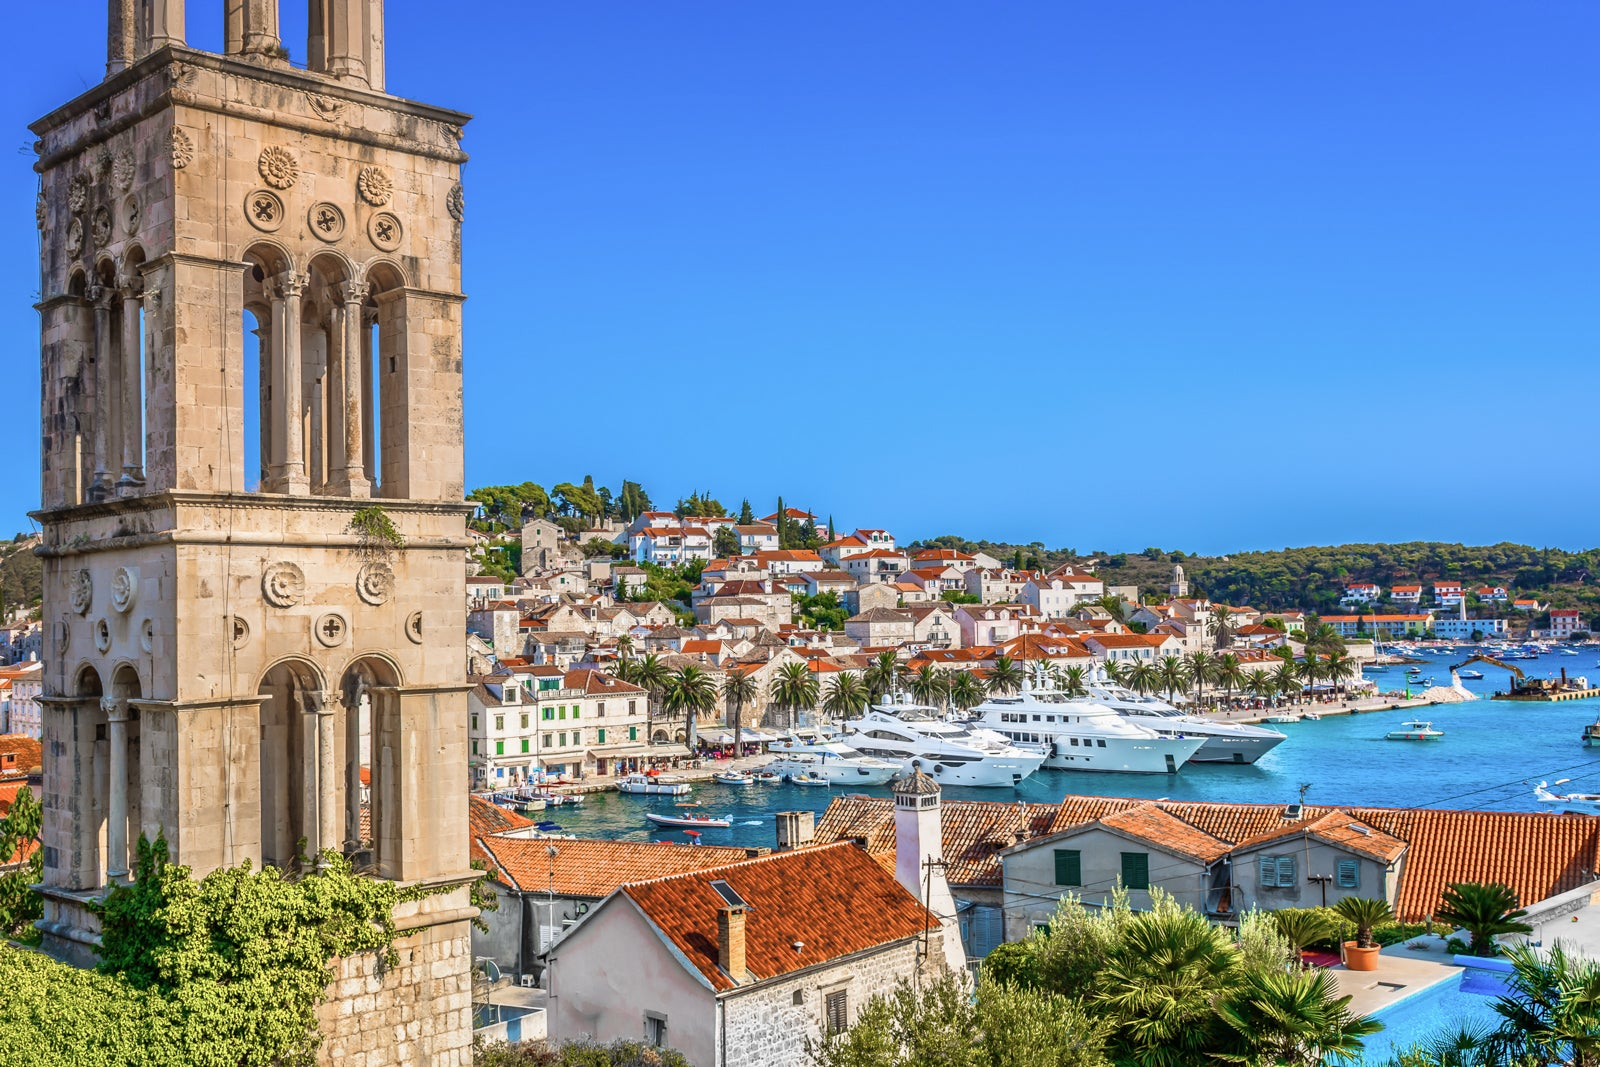 7 of the top European countries to visit this summer - The Points Guy